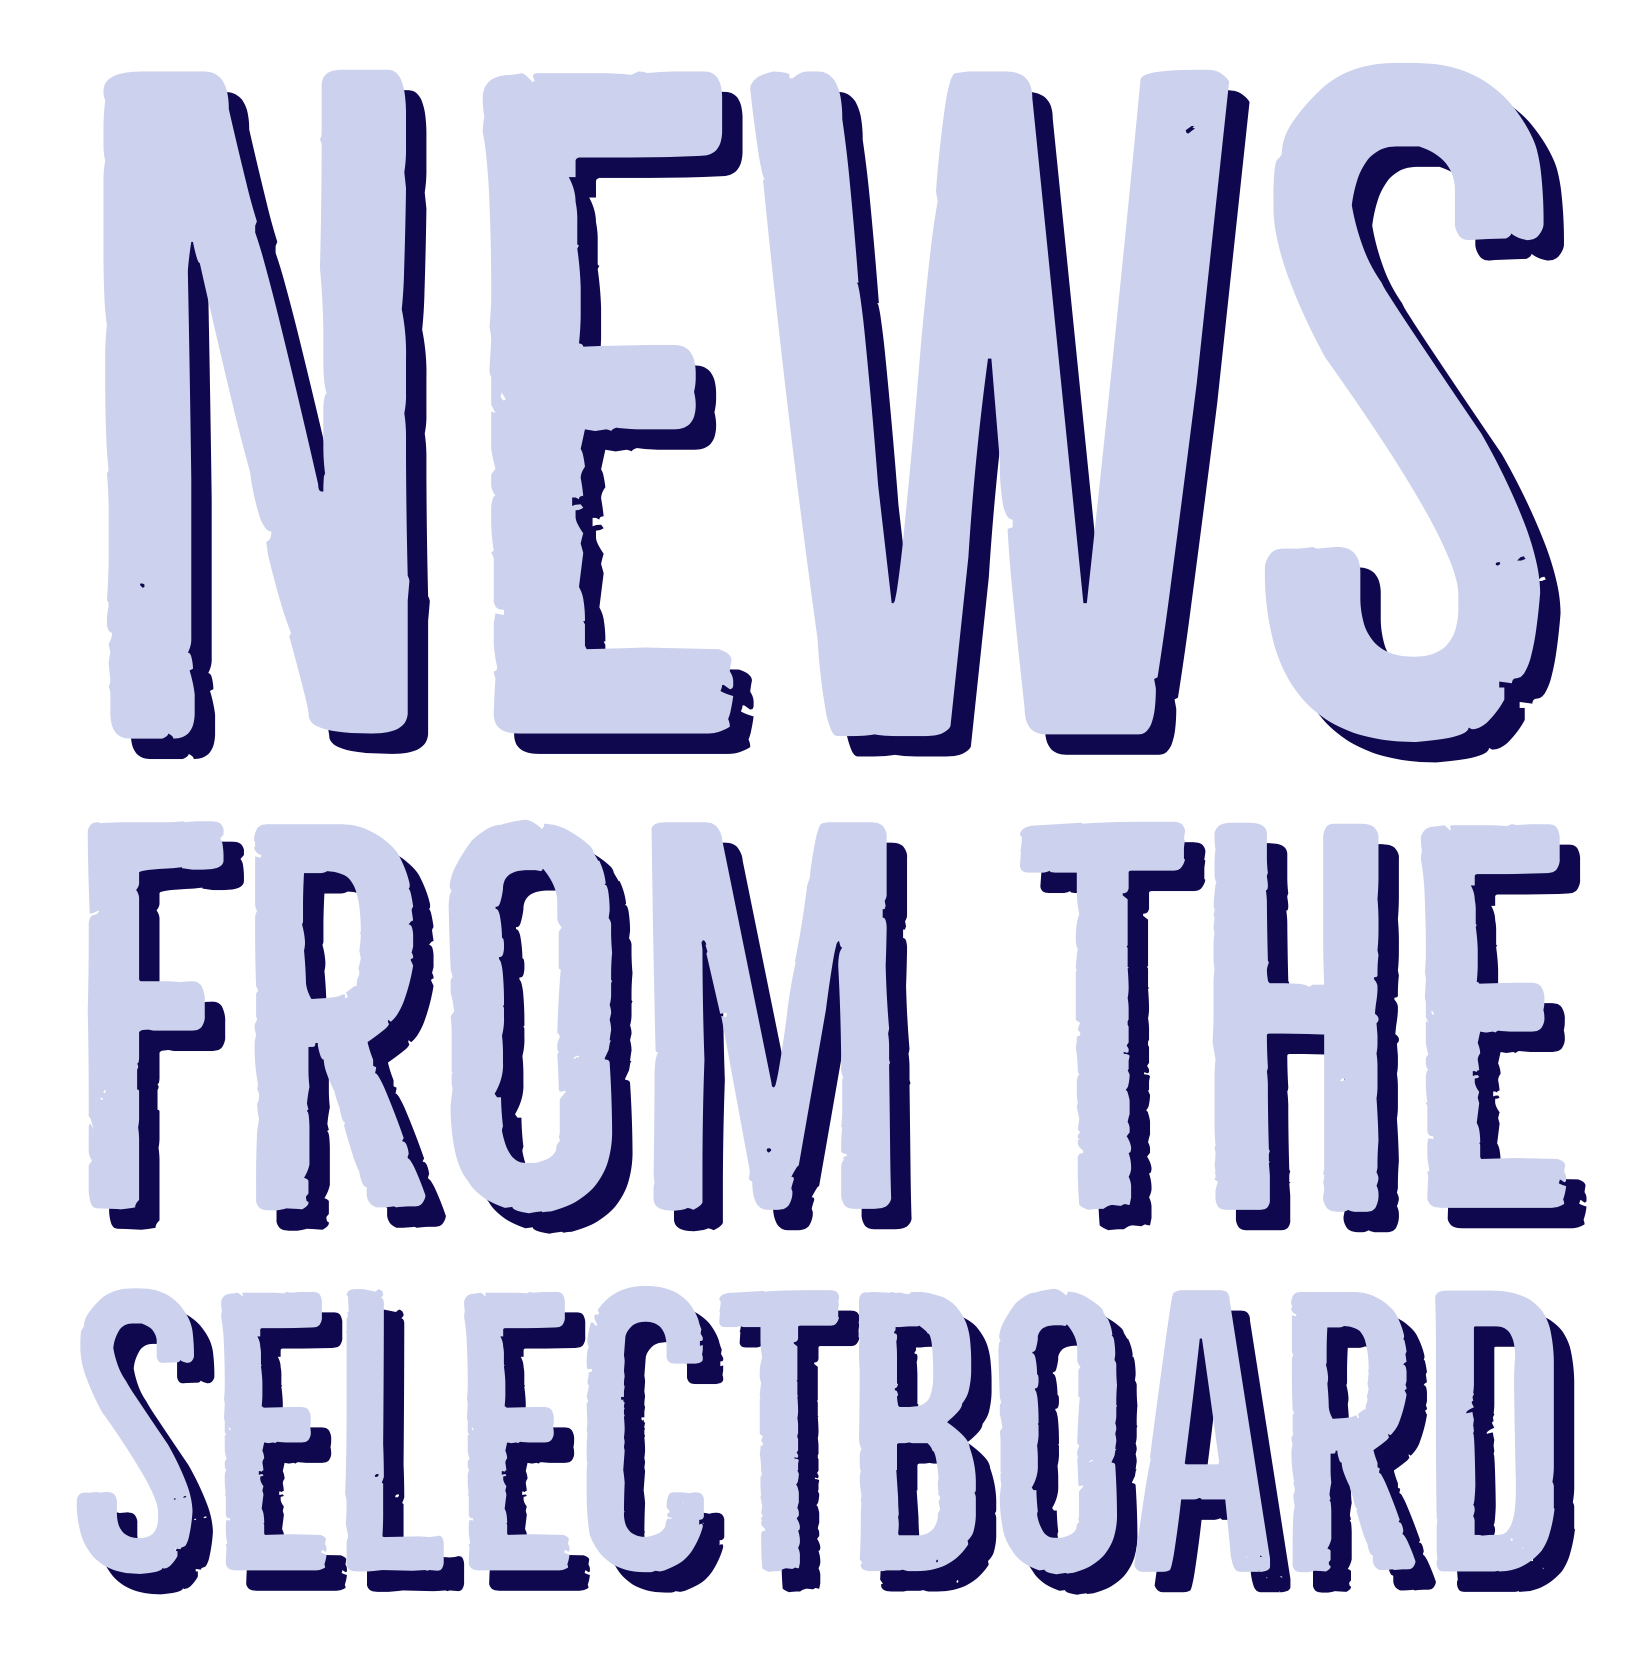 News from the Selectboard